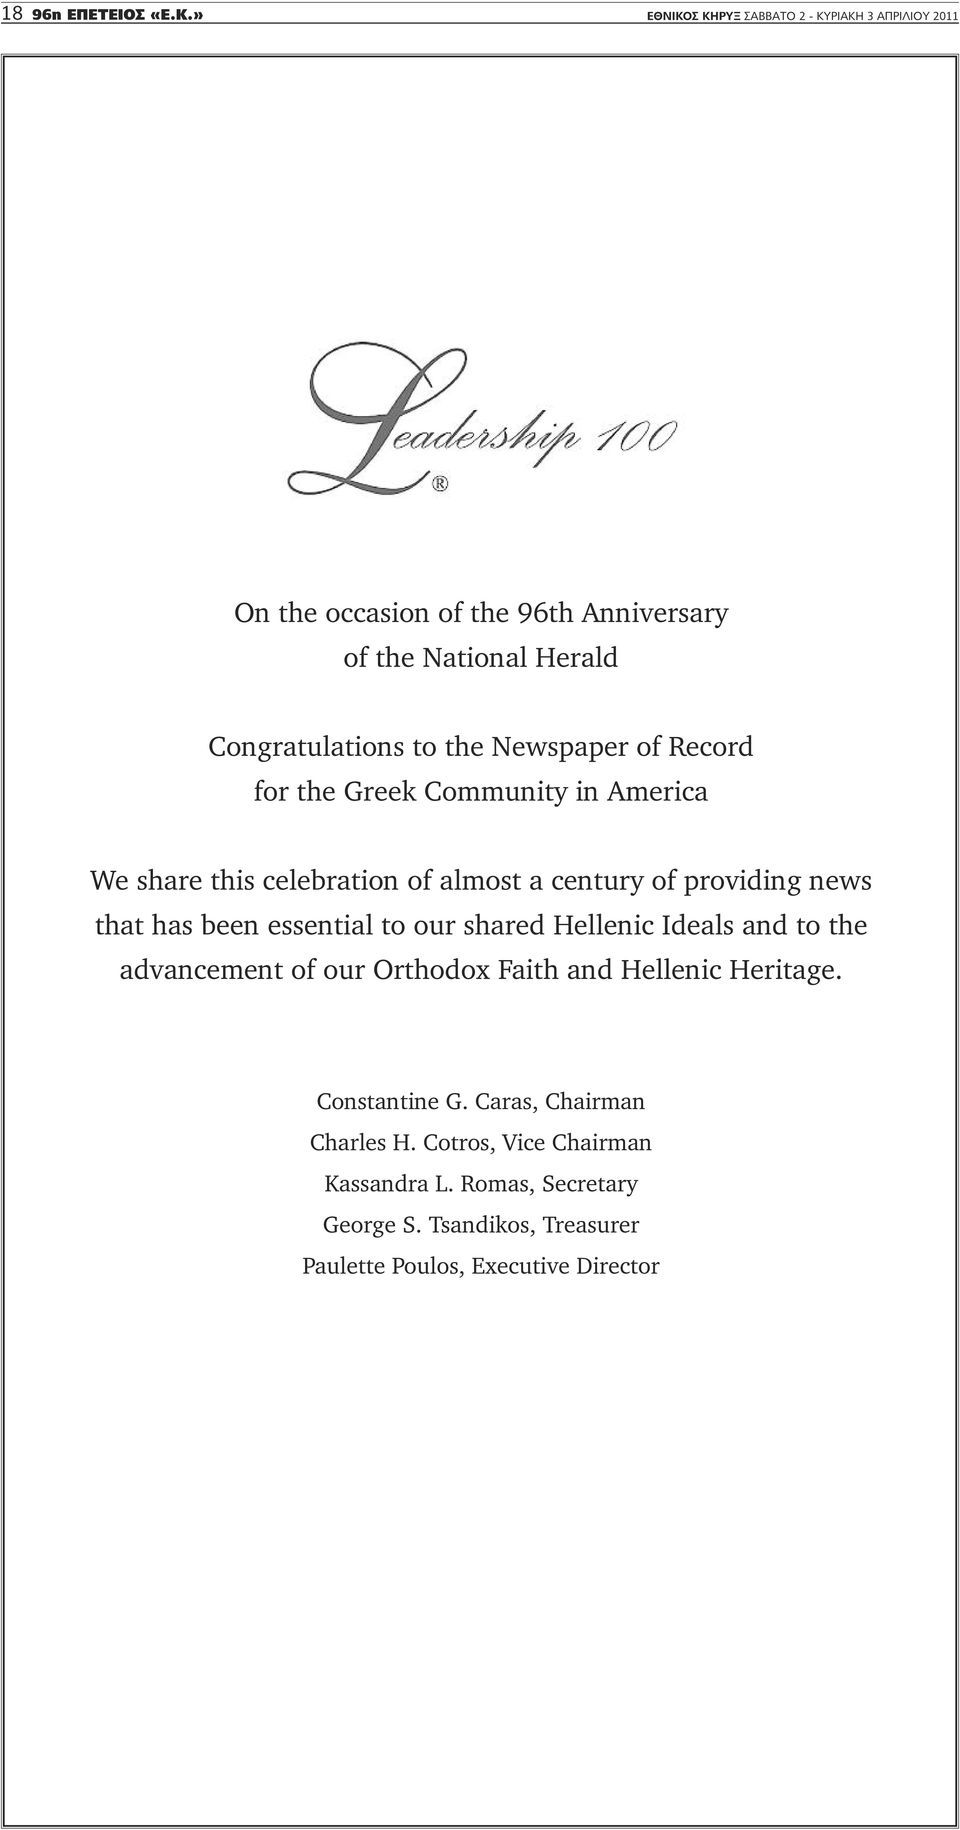 Newspaper of Record for the Greek Community in America We share this celebration of almost a century of providing news that has been